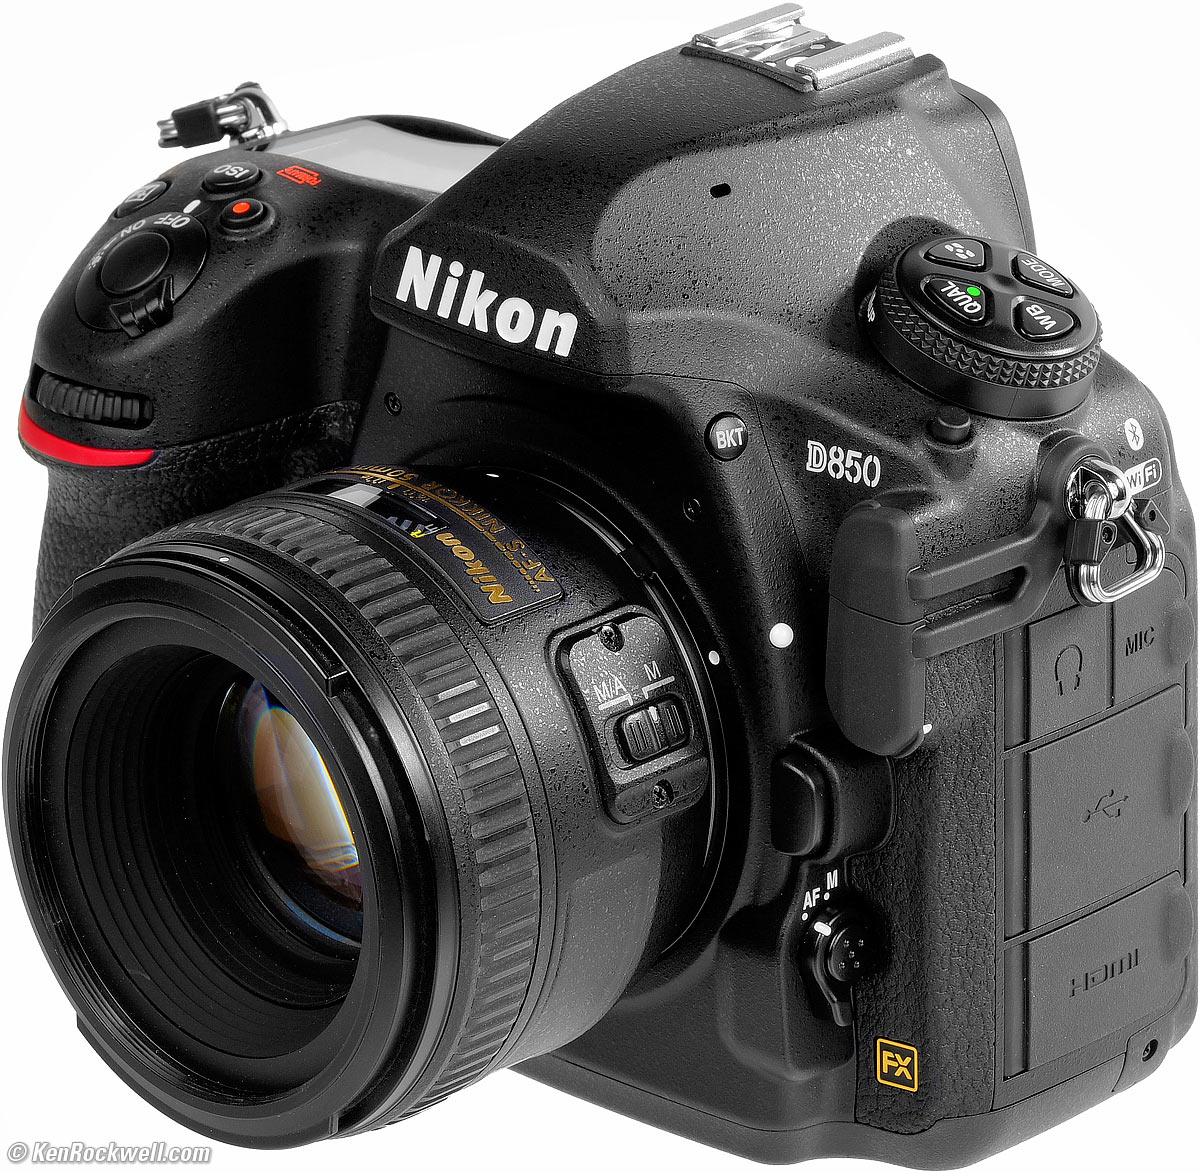 Best Nikon Dslr Camera For Wedding Photography: The Best Cameras For Photography You'll Find In 2019